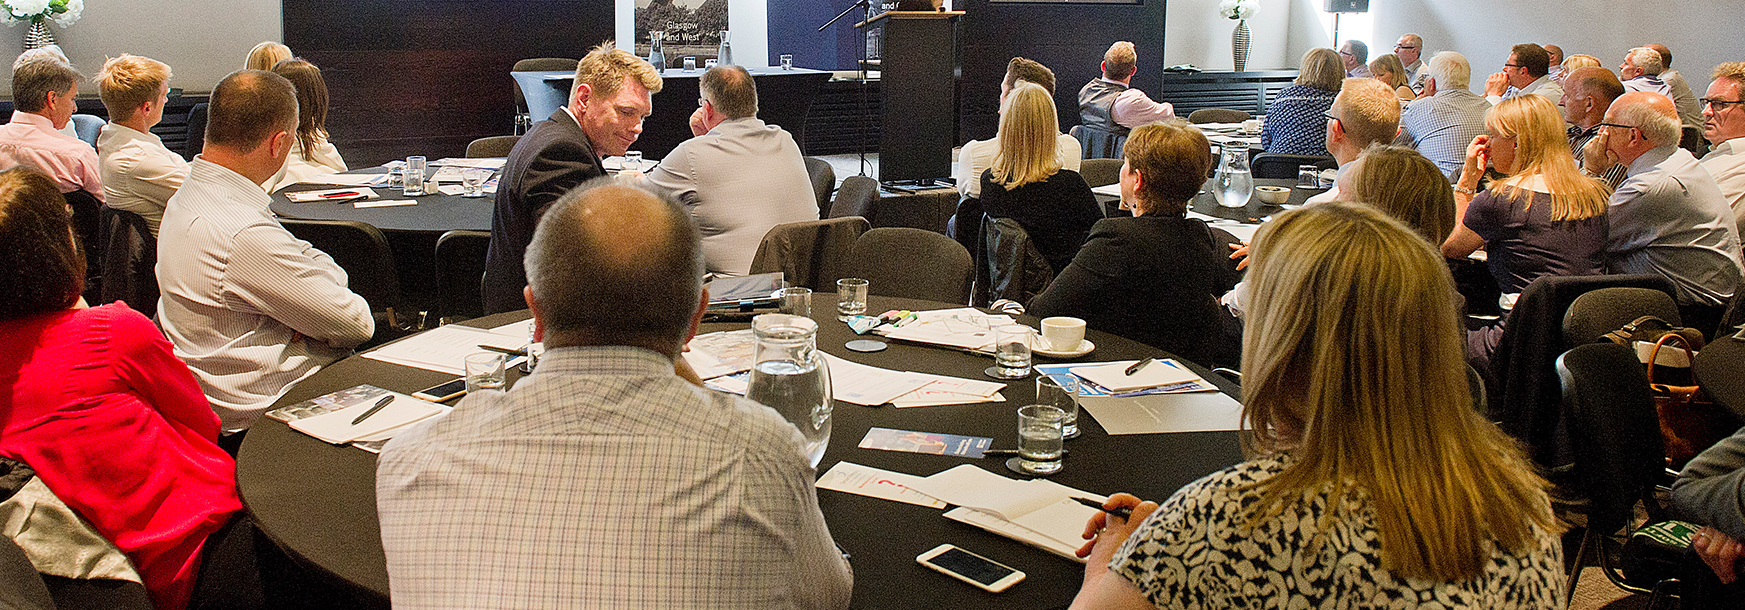 Conference tackles big issues for practitioners | Technical